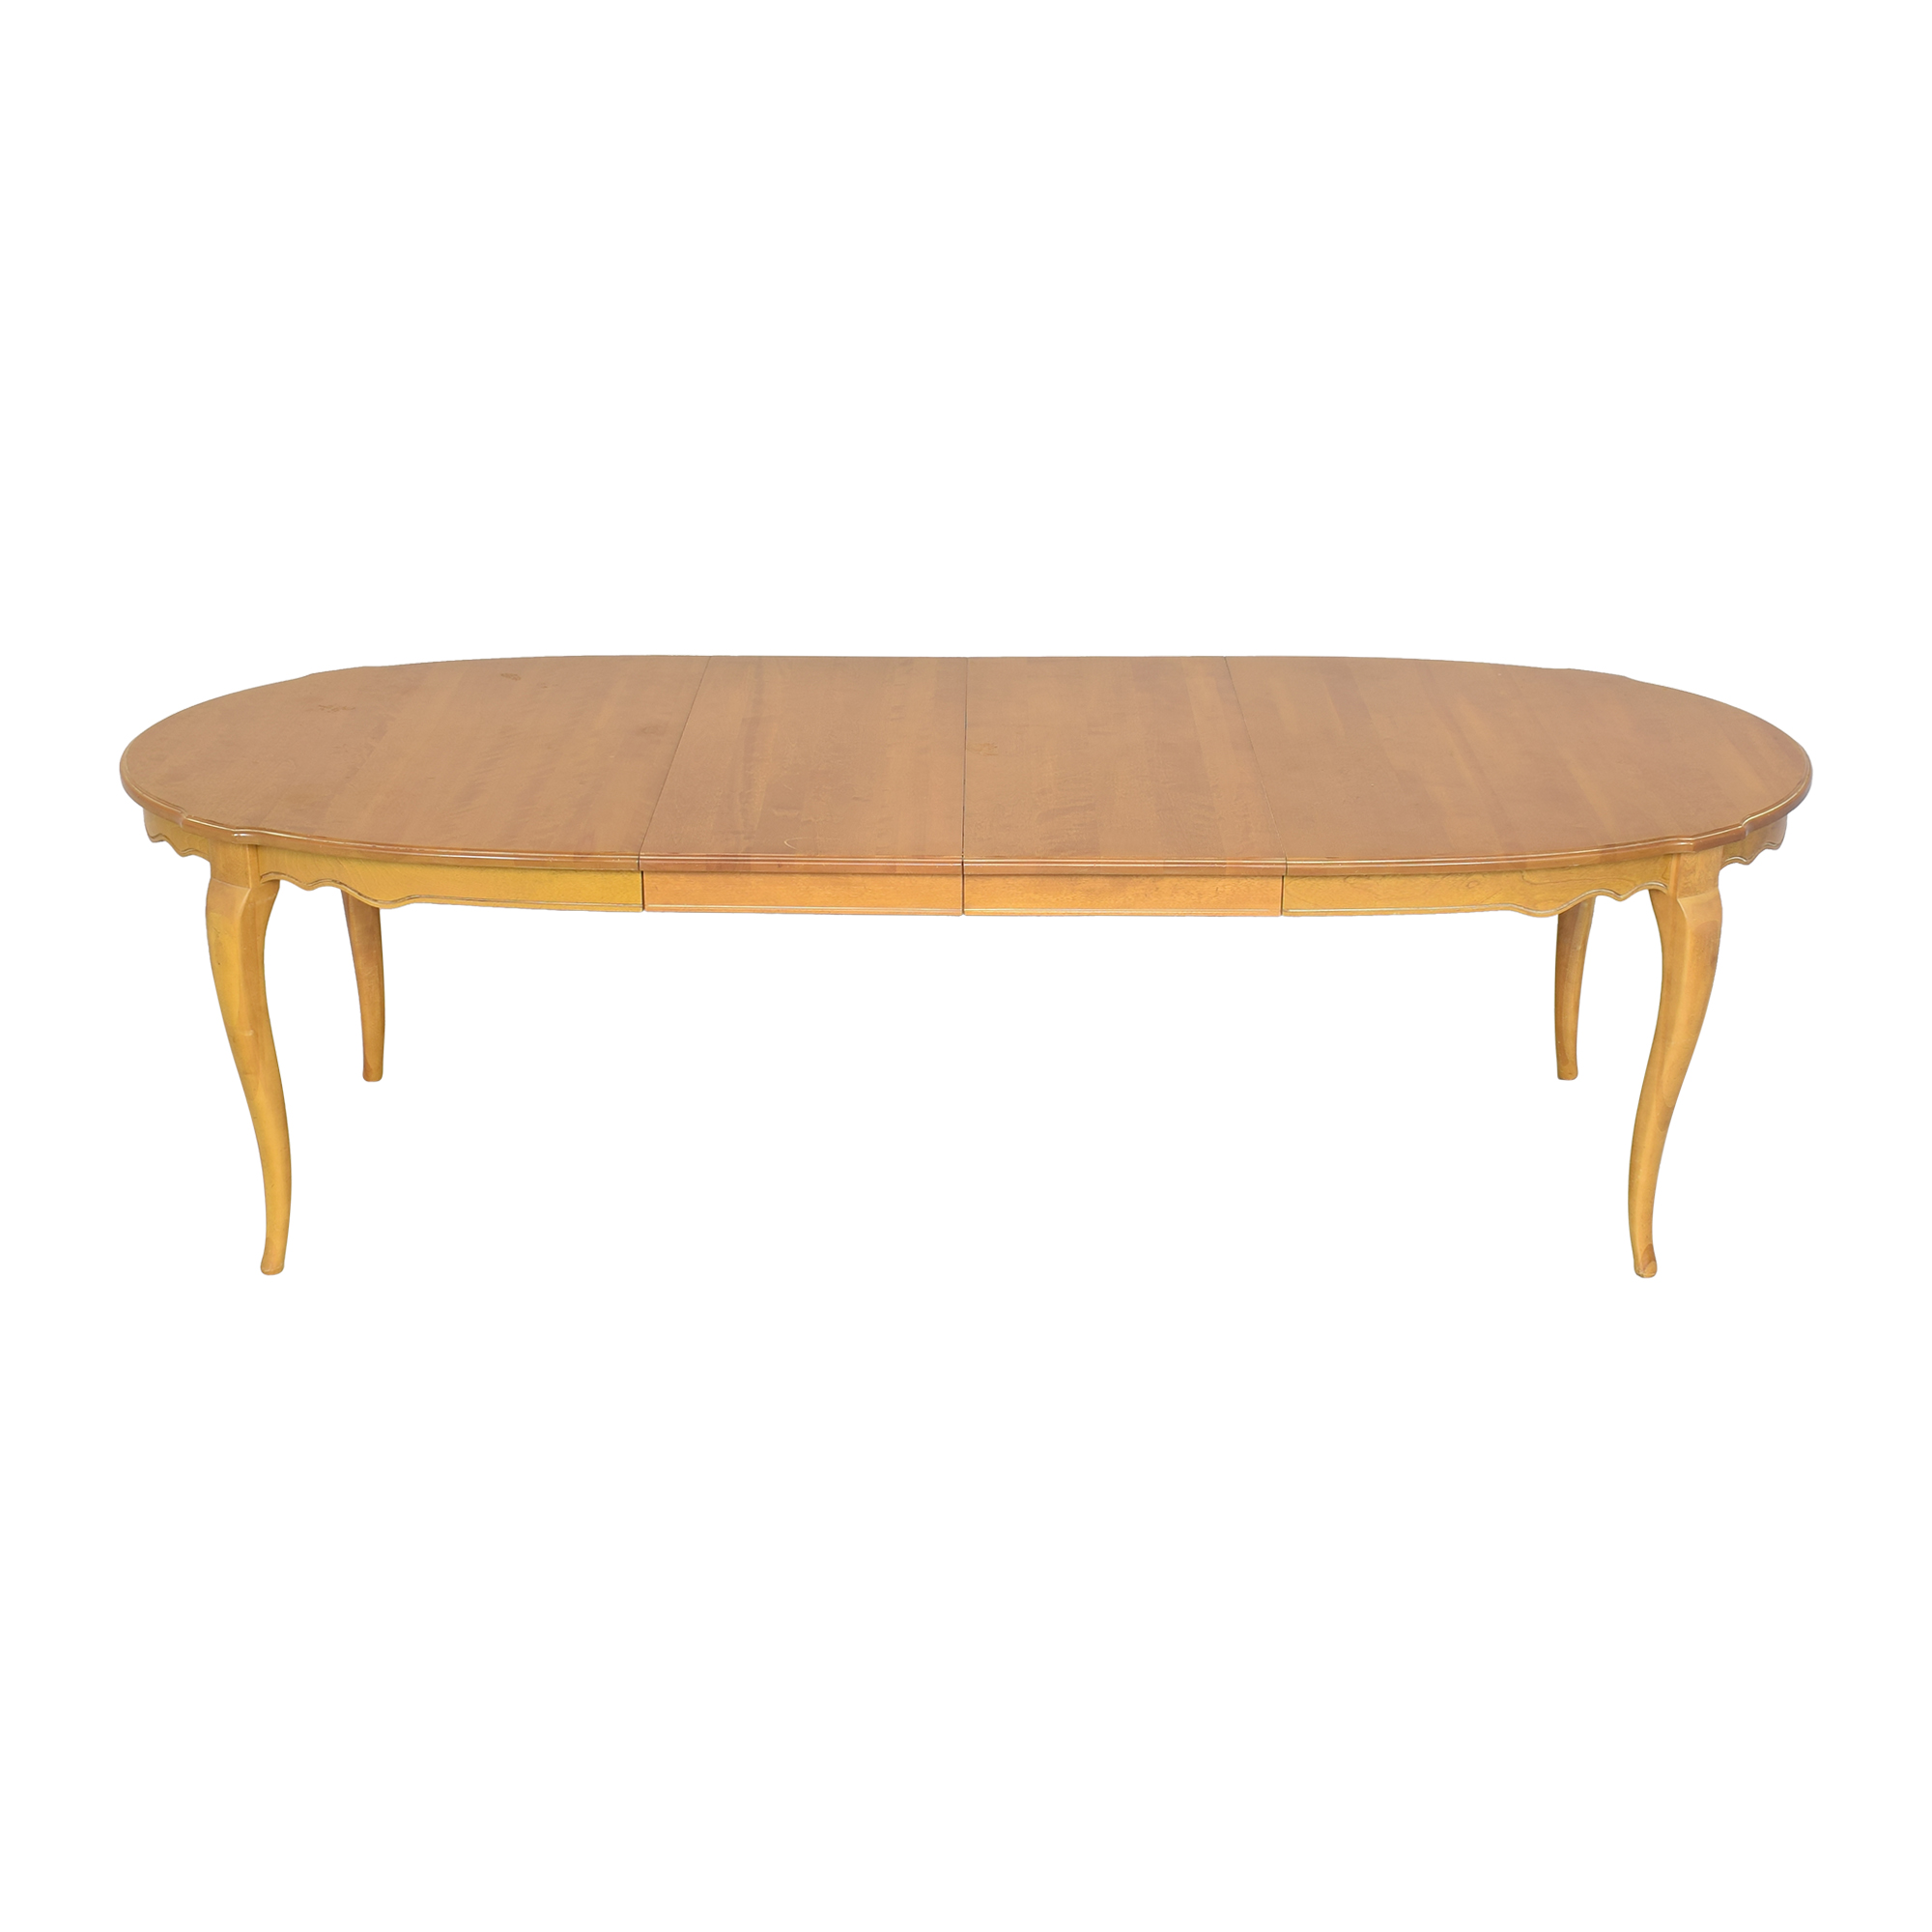 Ethan Allen Ethan Allen Country French Oval Extendable Dining Table nyc